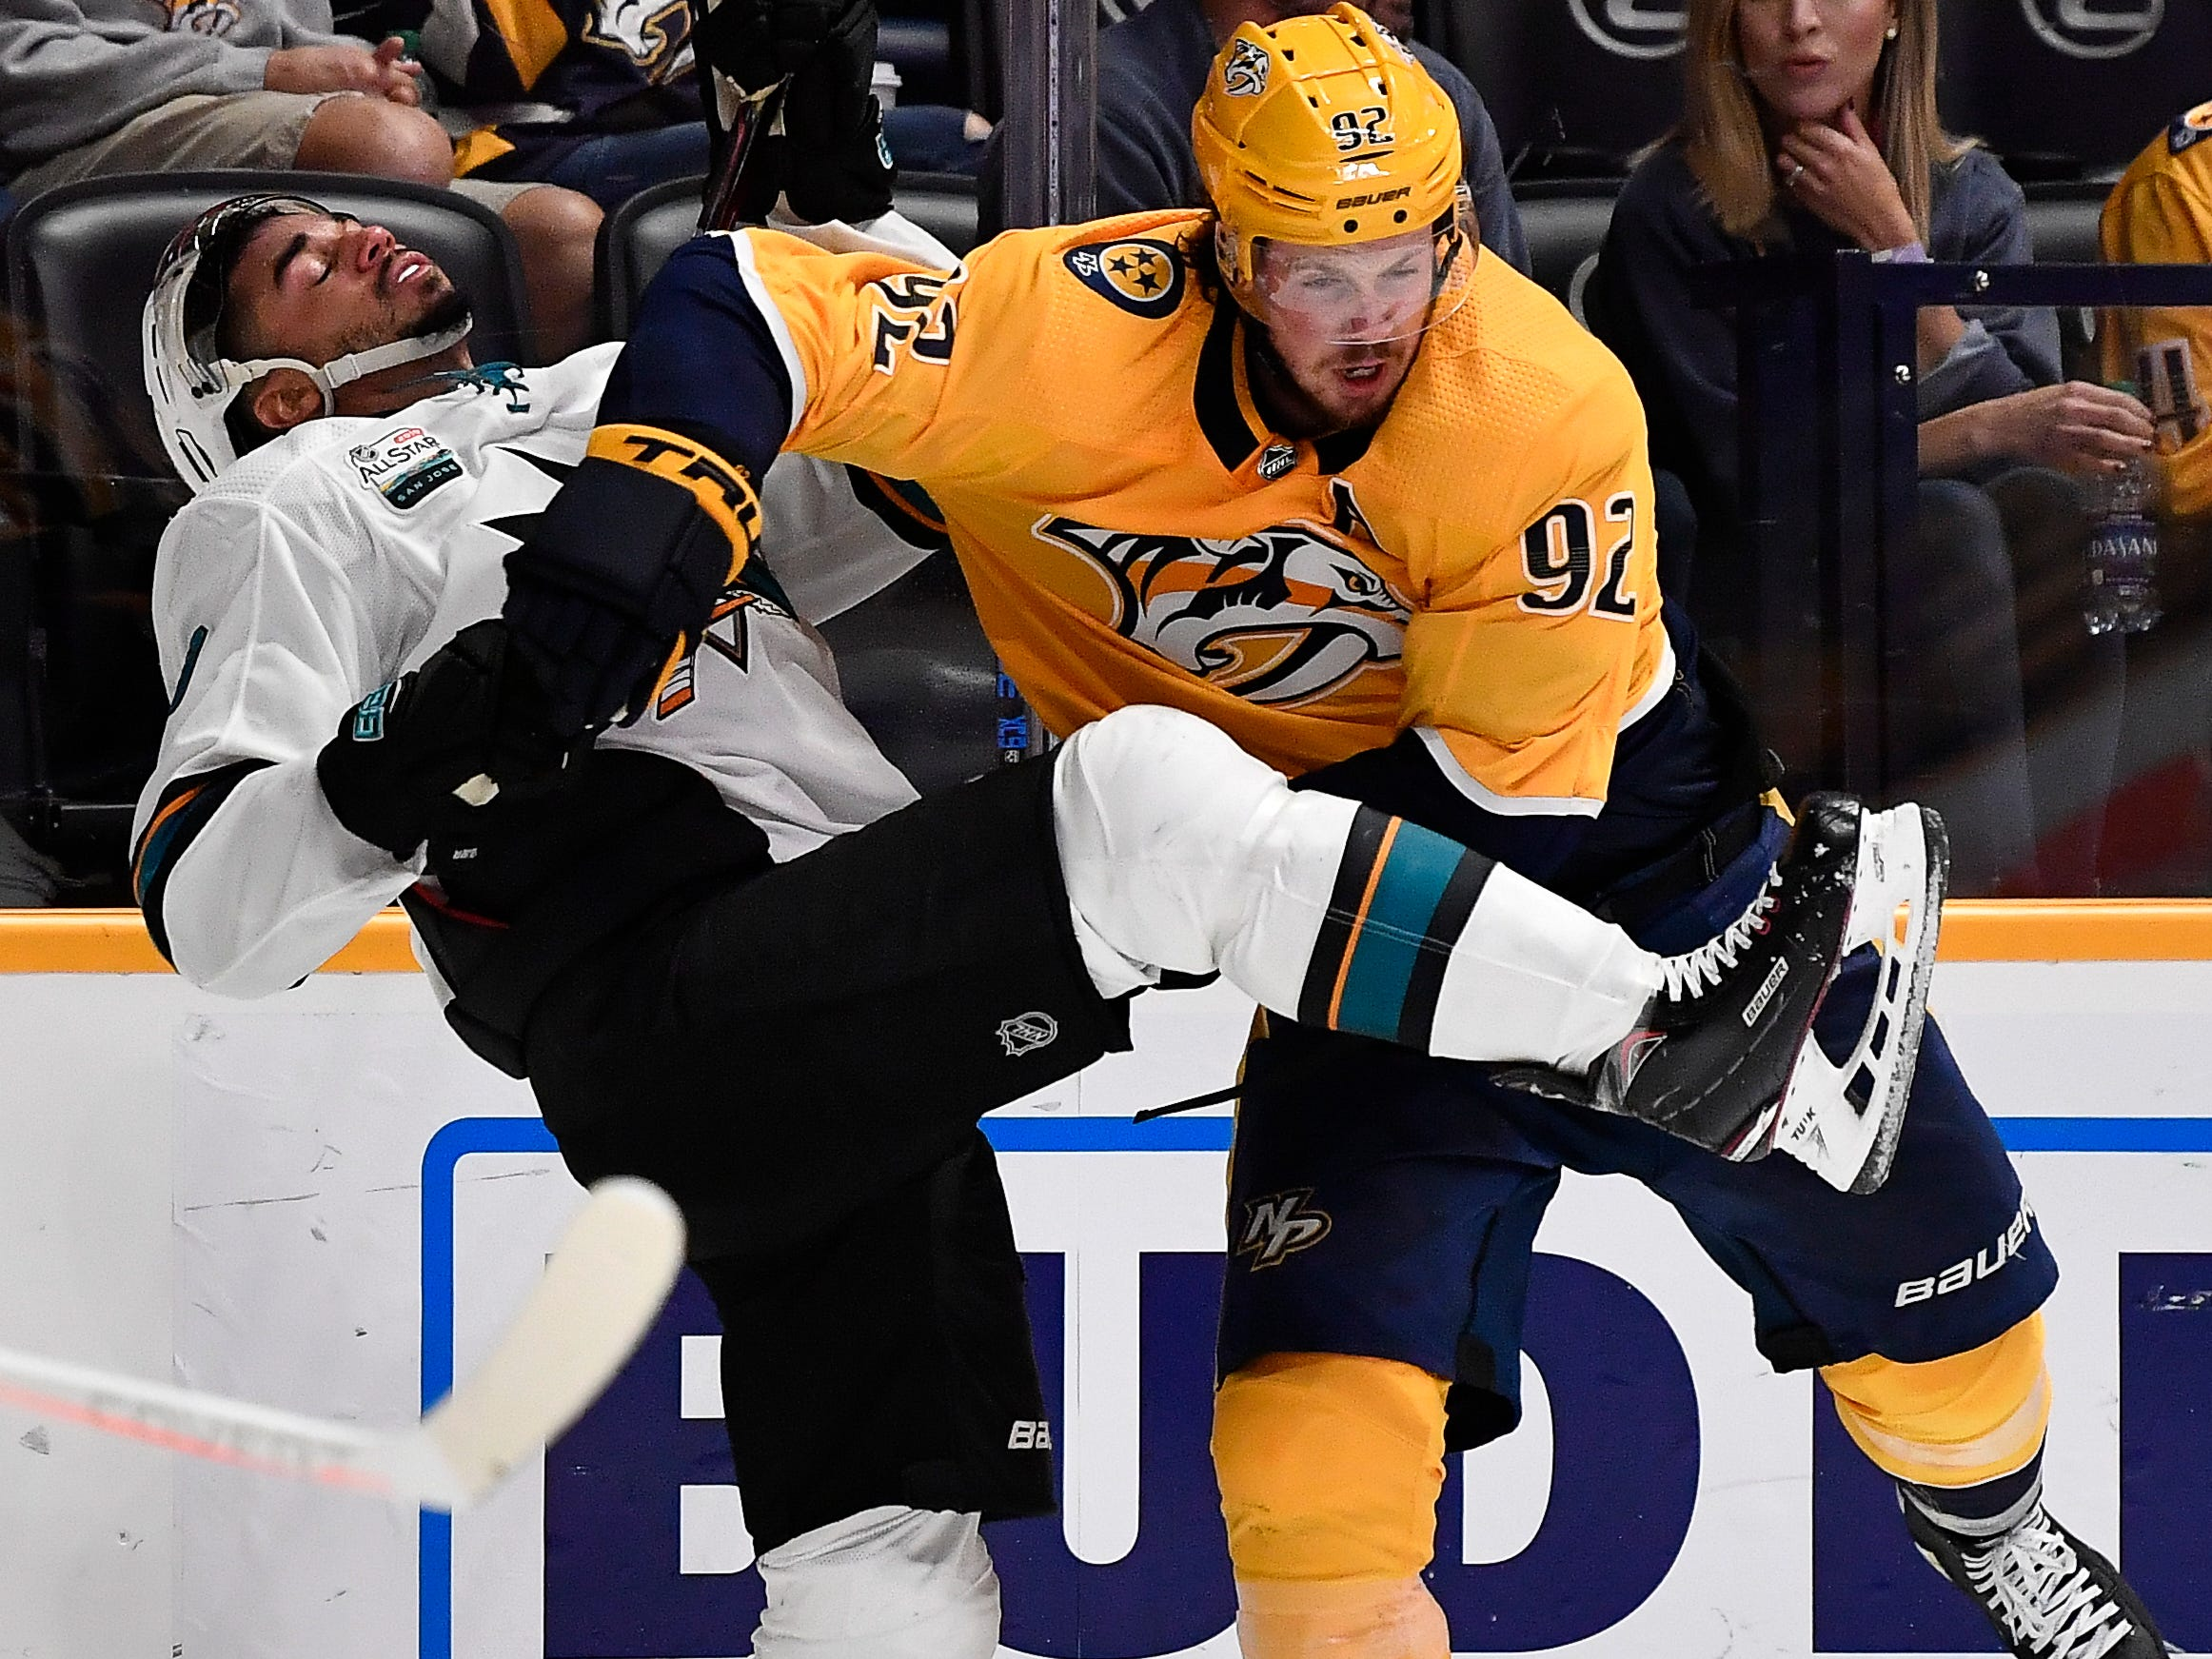 Predators center Ryan Johansen (92) checks Sharks left wing Evander Kane (9) during the second period at Bridgestone Arena Tuesday, Oct. 23, 2018, in Nashville, Tenn.